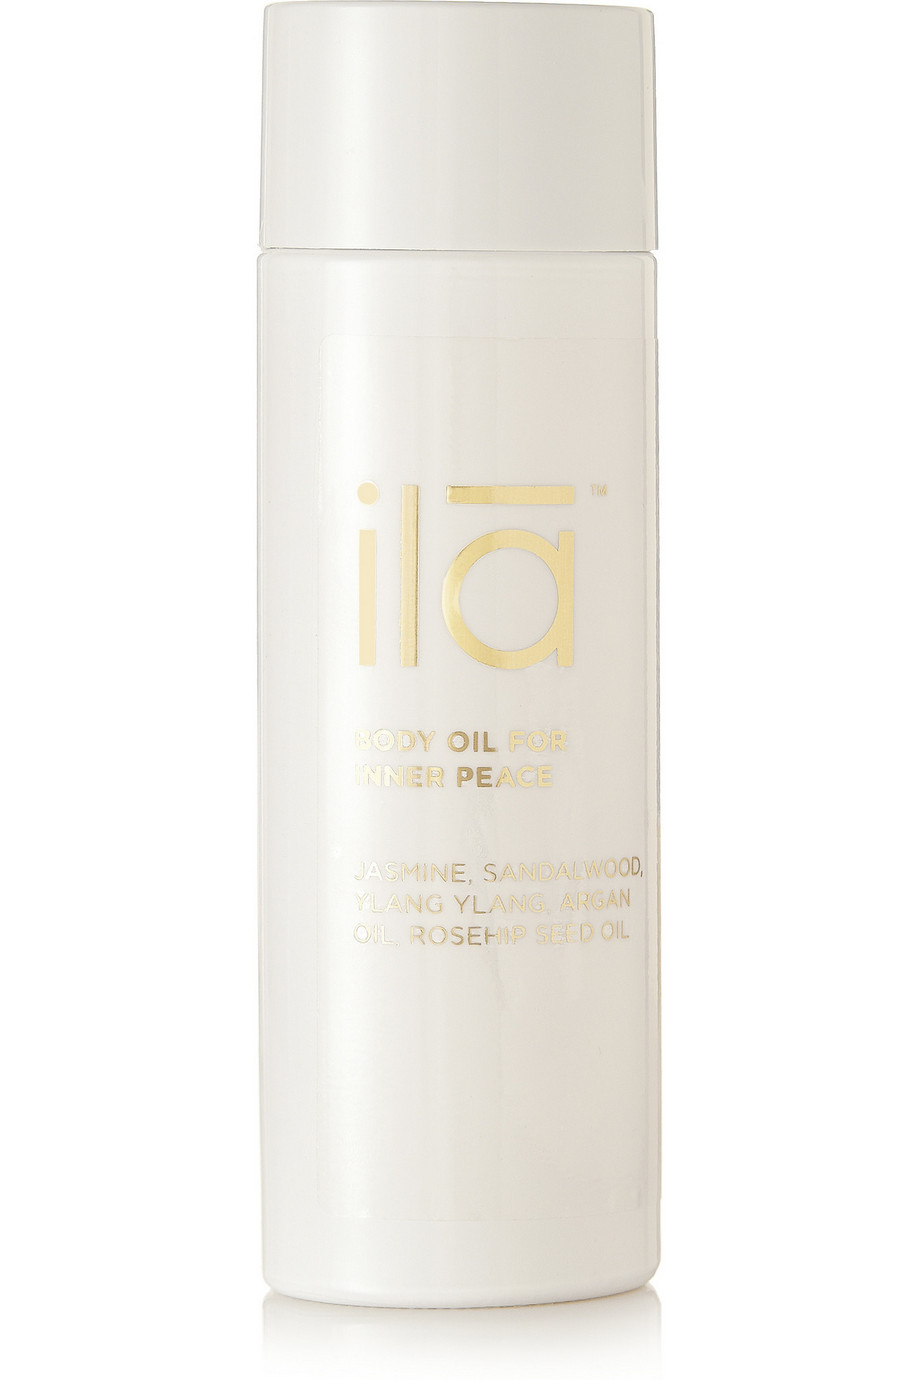 Ila Body Ila Body Oil For Inner Peace